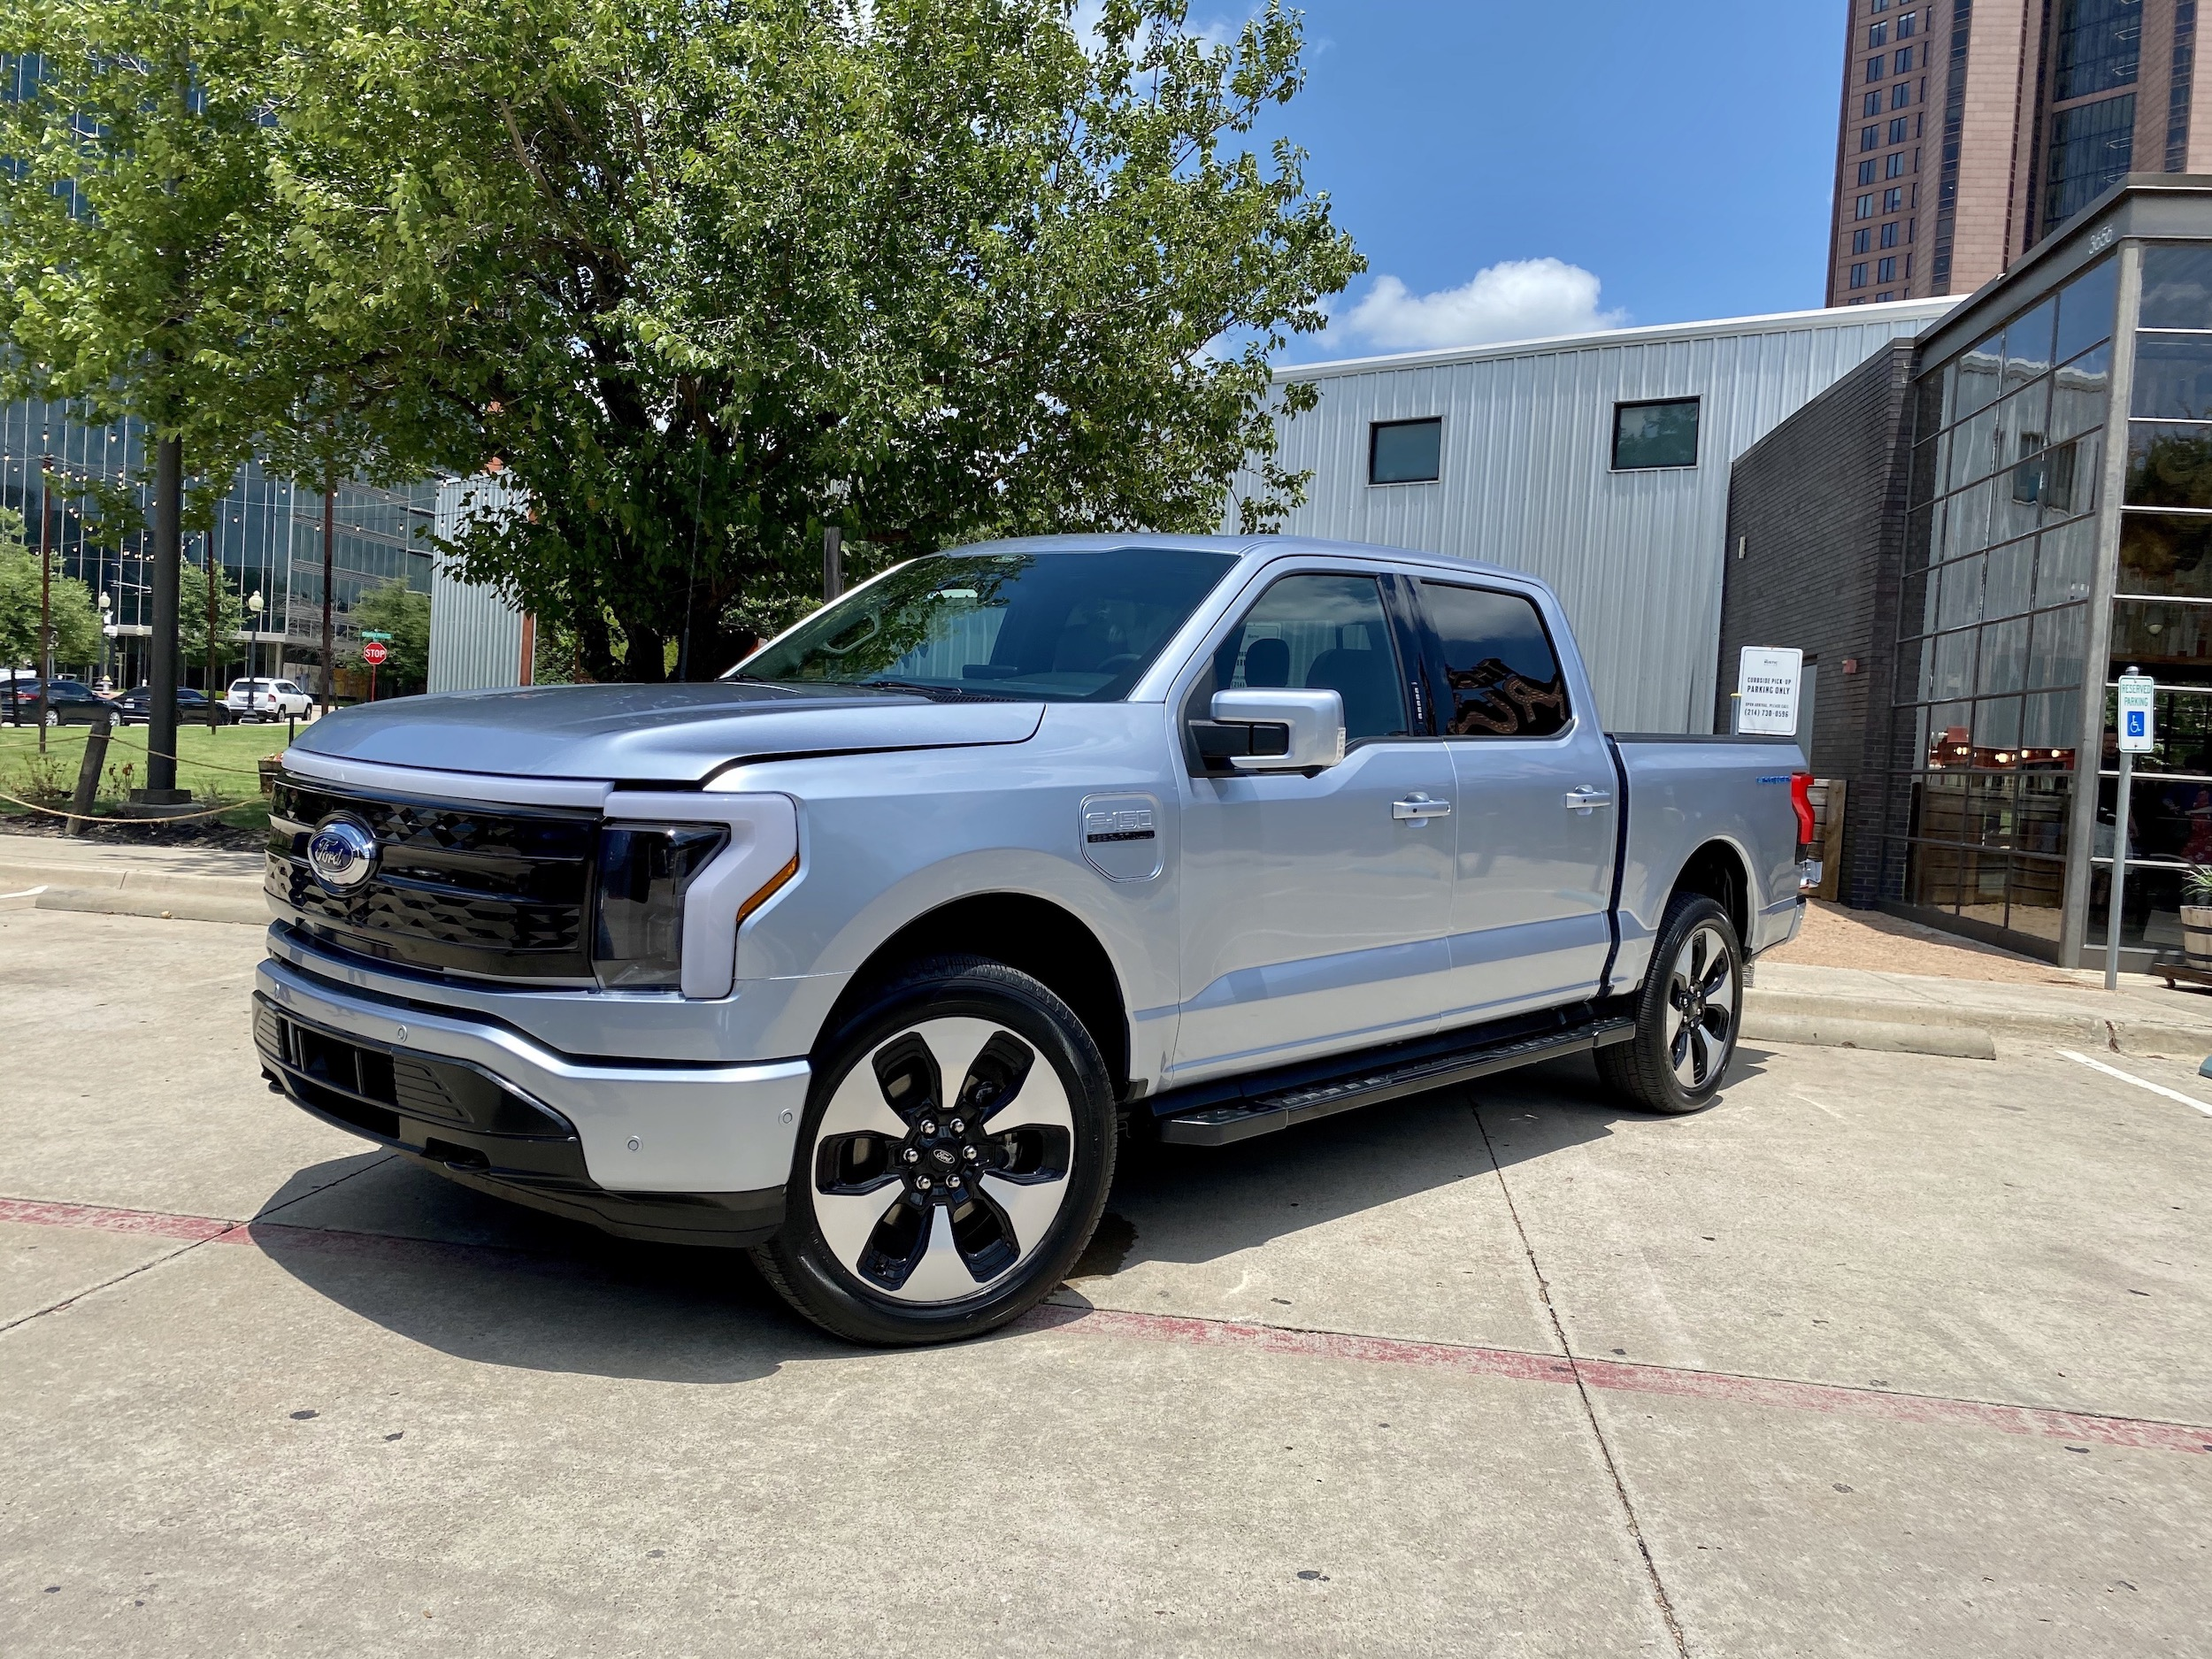 All-Electric 2022 Ford F-150 Lighting Makes Texas Debut